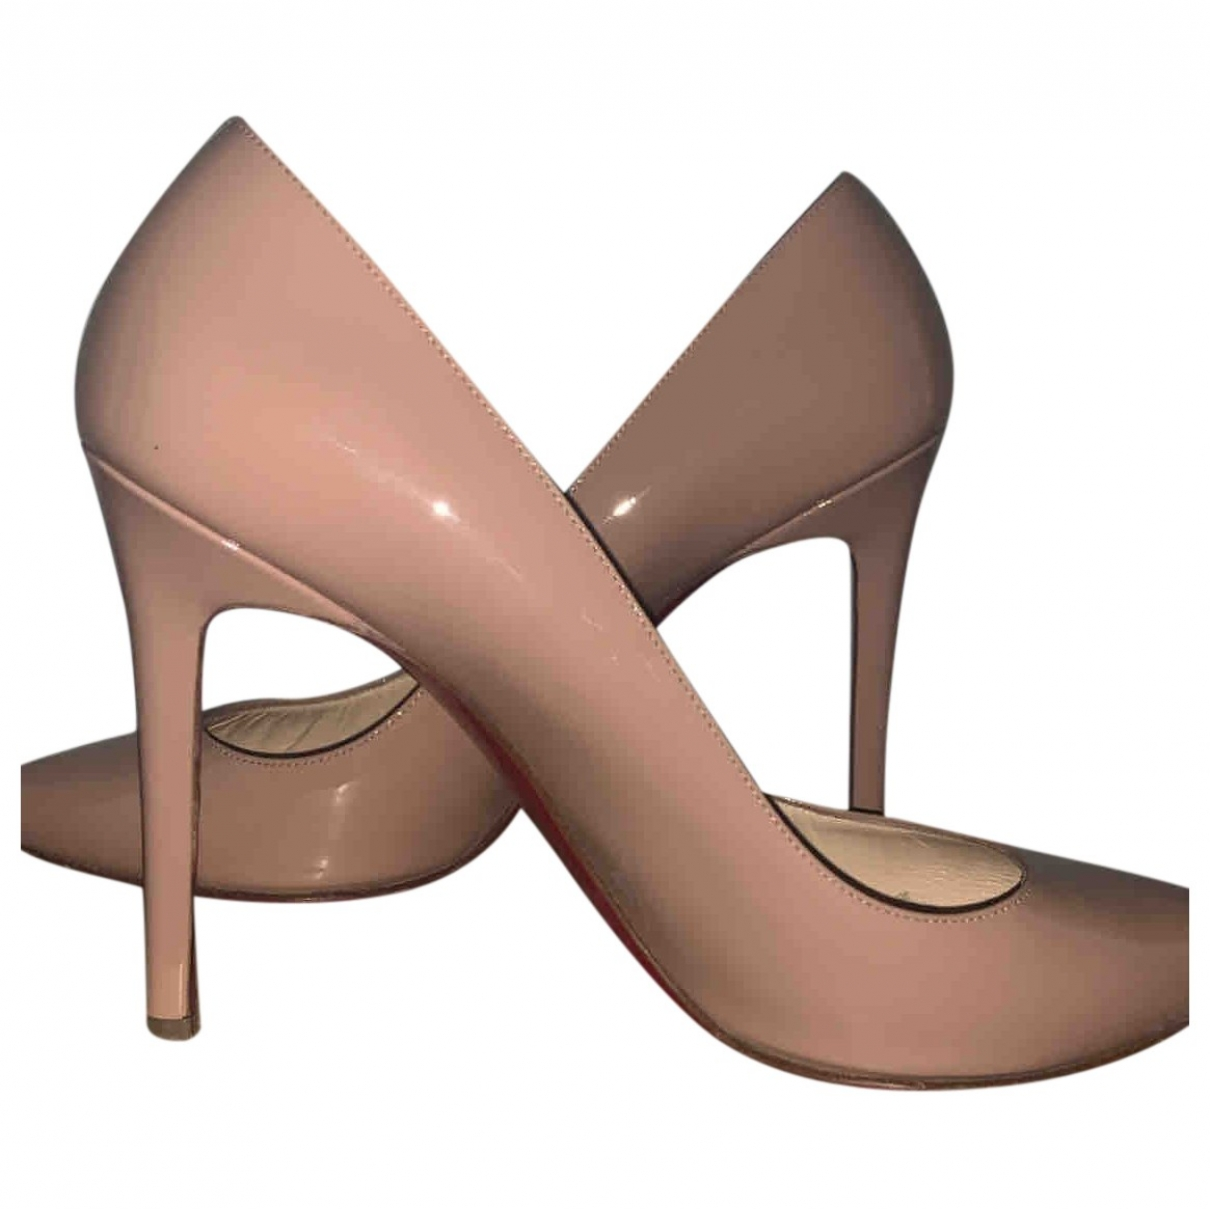 Christian Louboutin Pigalle Beige Leather Heels for Women 40 EU